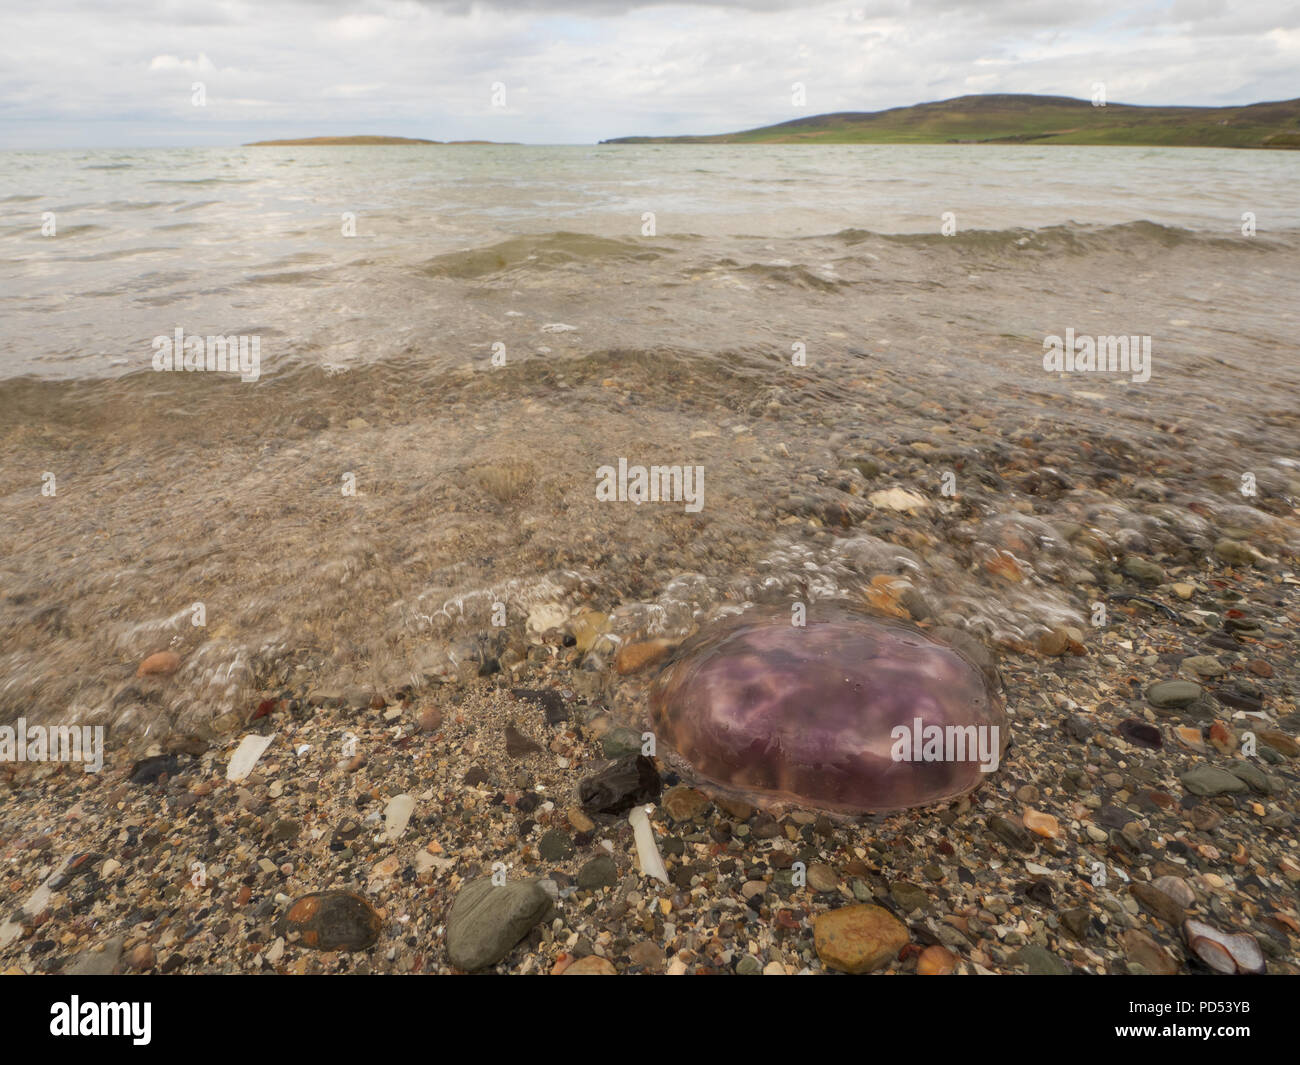 A jellyfish washed up on Evie Sands, Orkney. - Stock Image